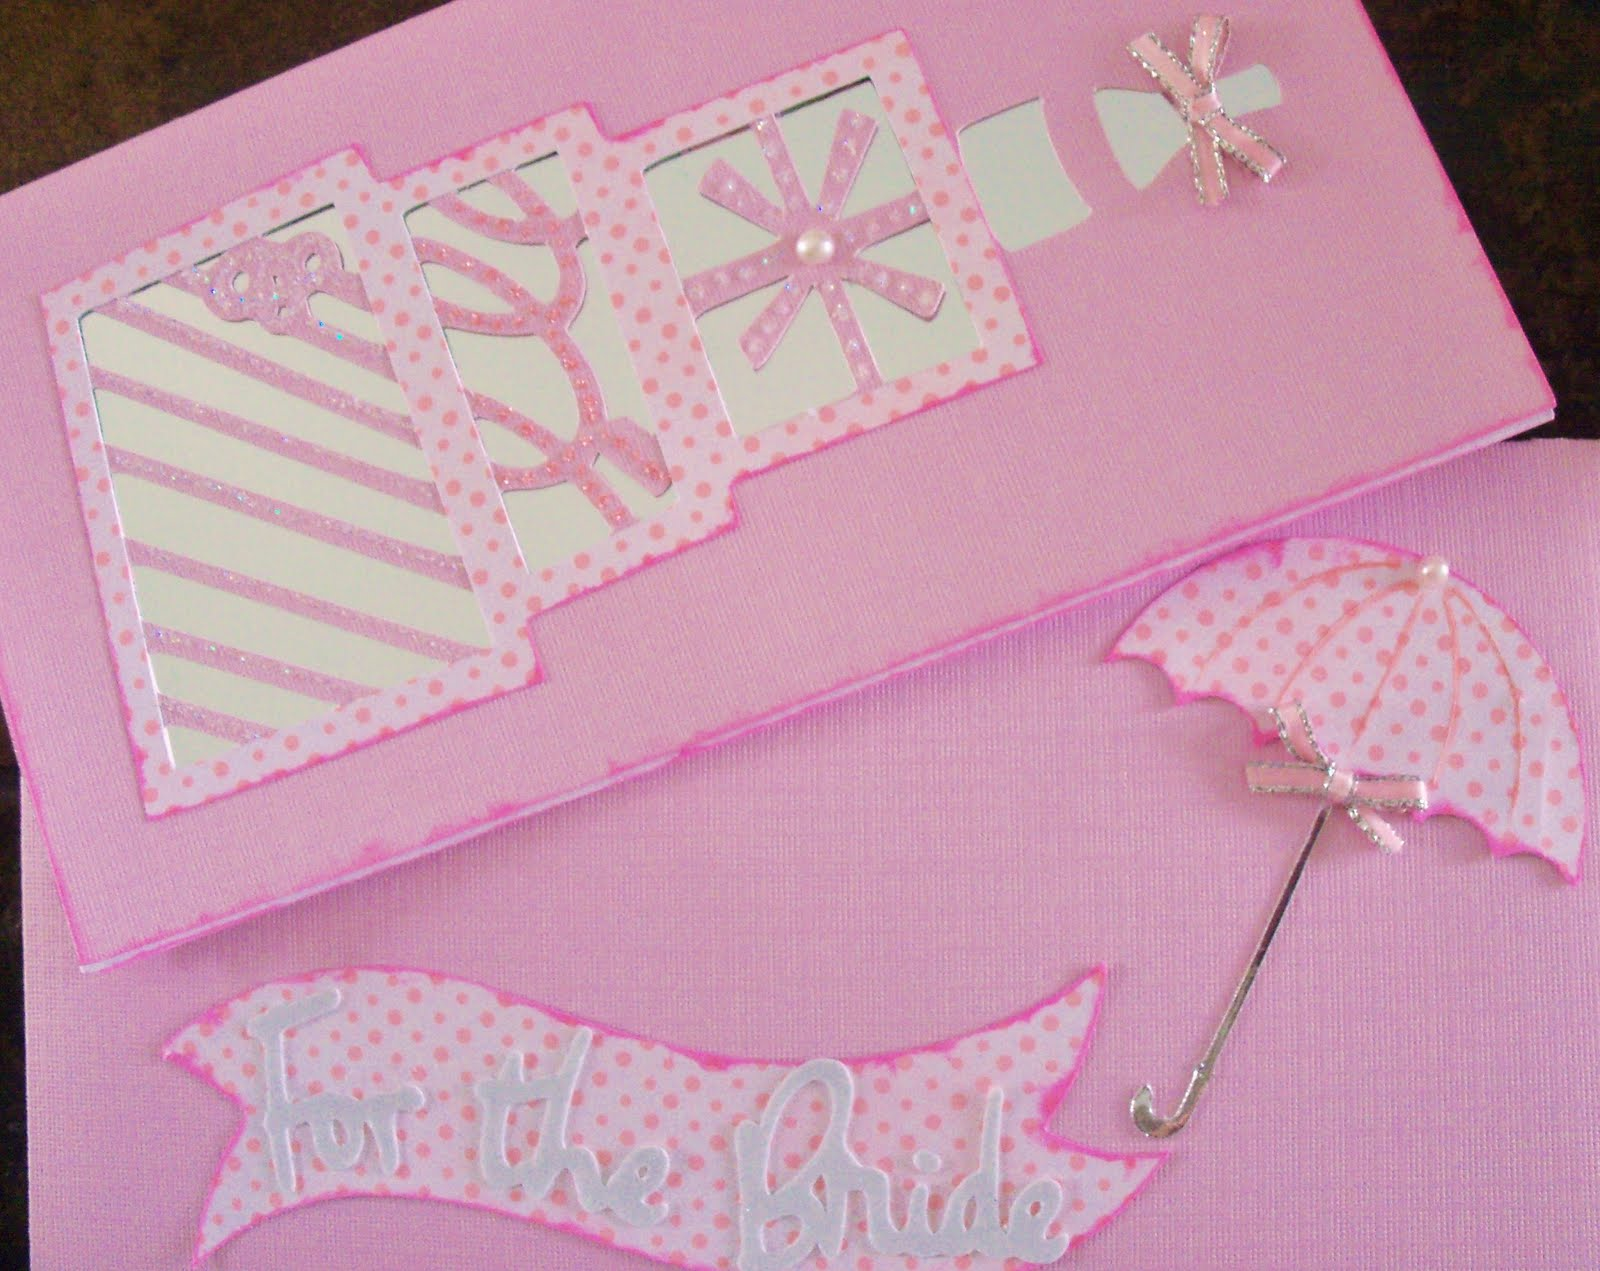 Crafty dreams so nando manualidades pretty in pink - Martha stewart manualidades ...